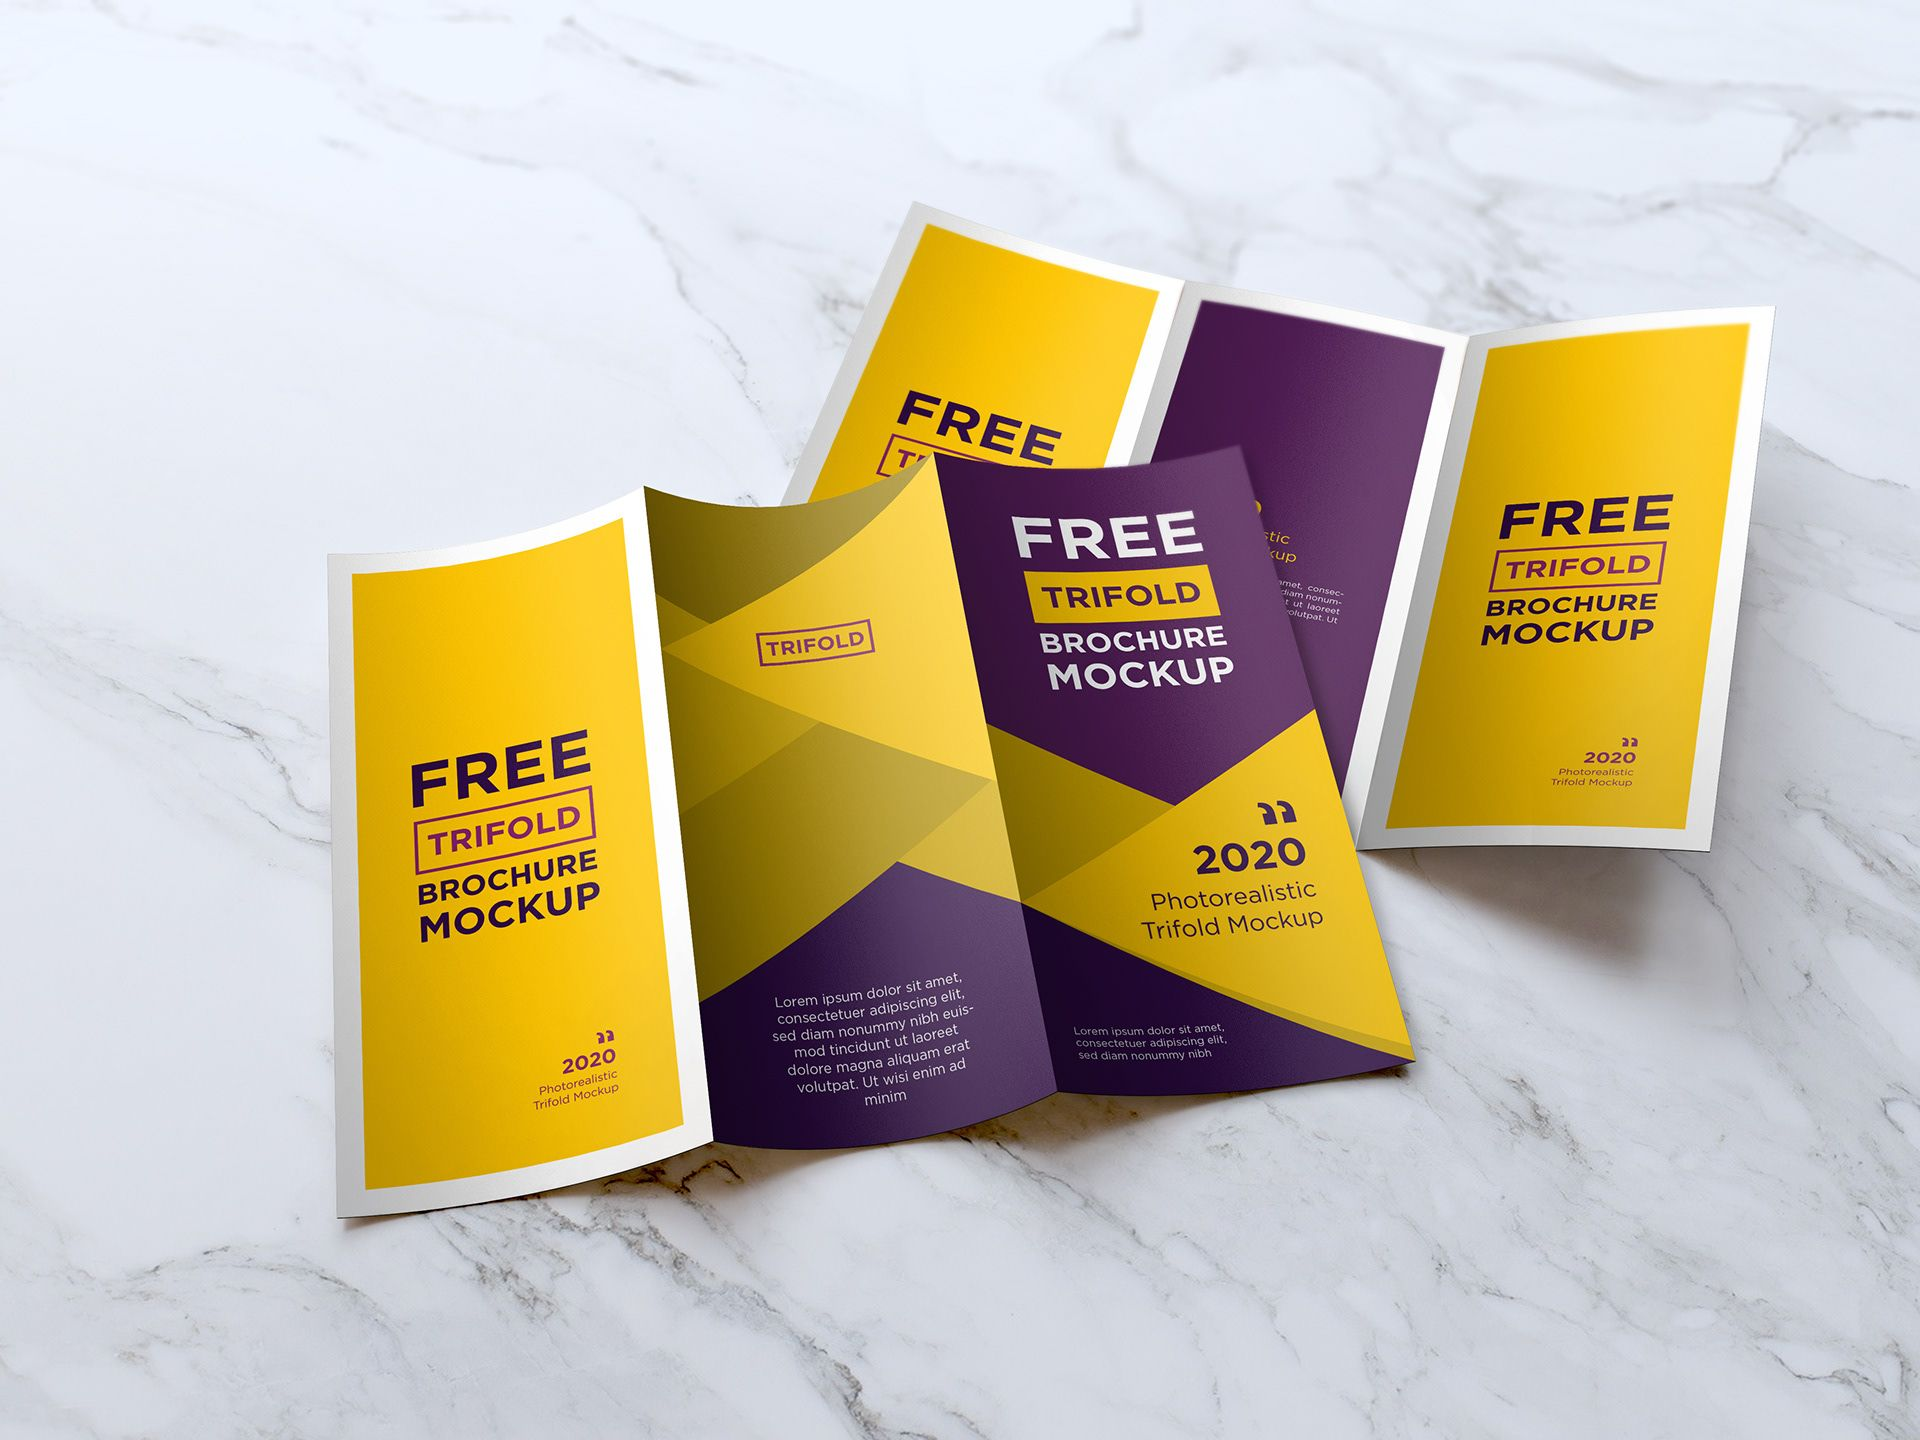 Free Trifold Brochure Mockup Psd In 2021 Trifold Brochure Brochure Mockup Psd Brochures Mockups